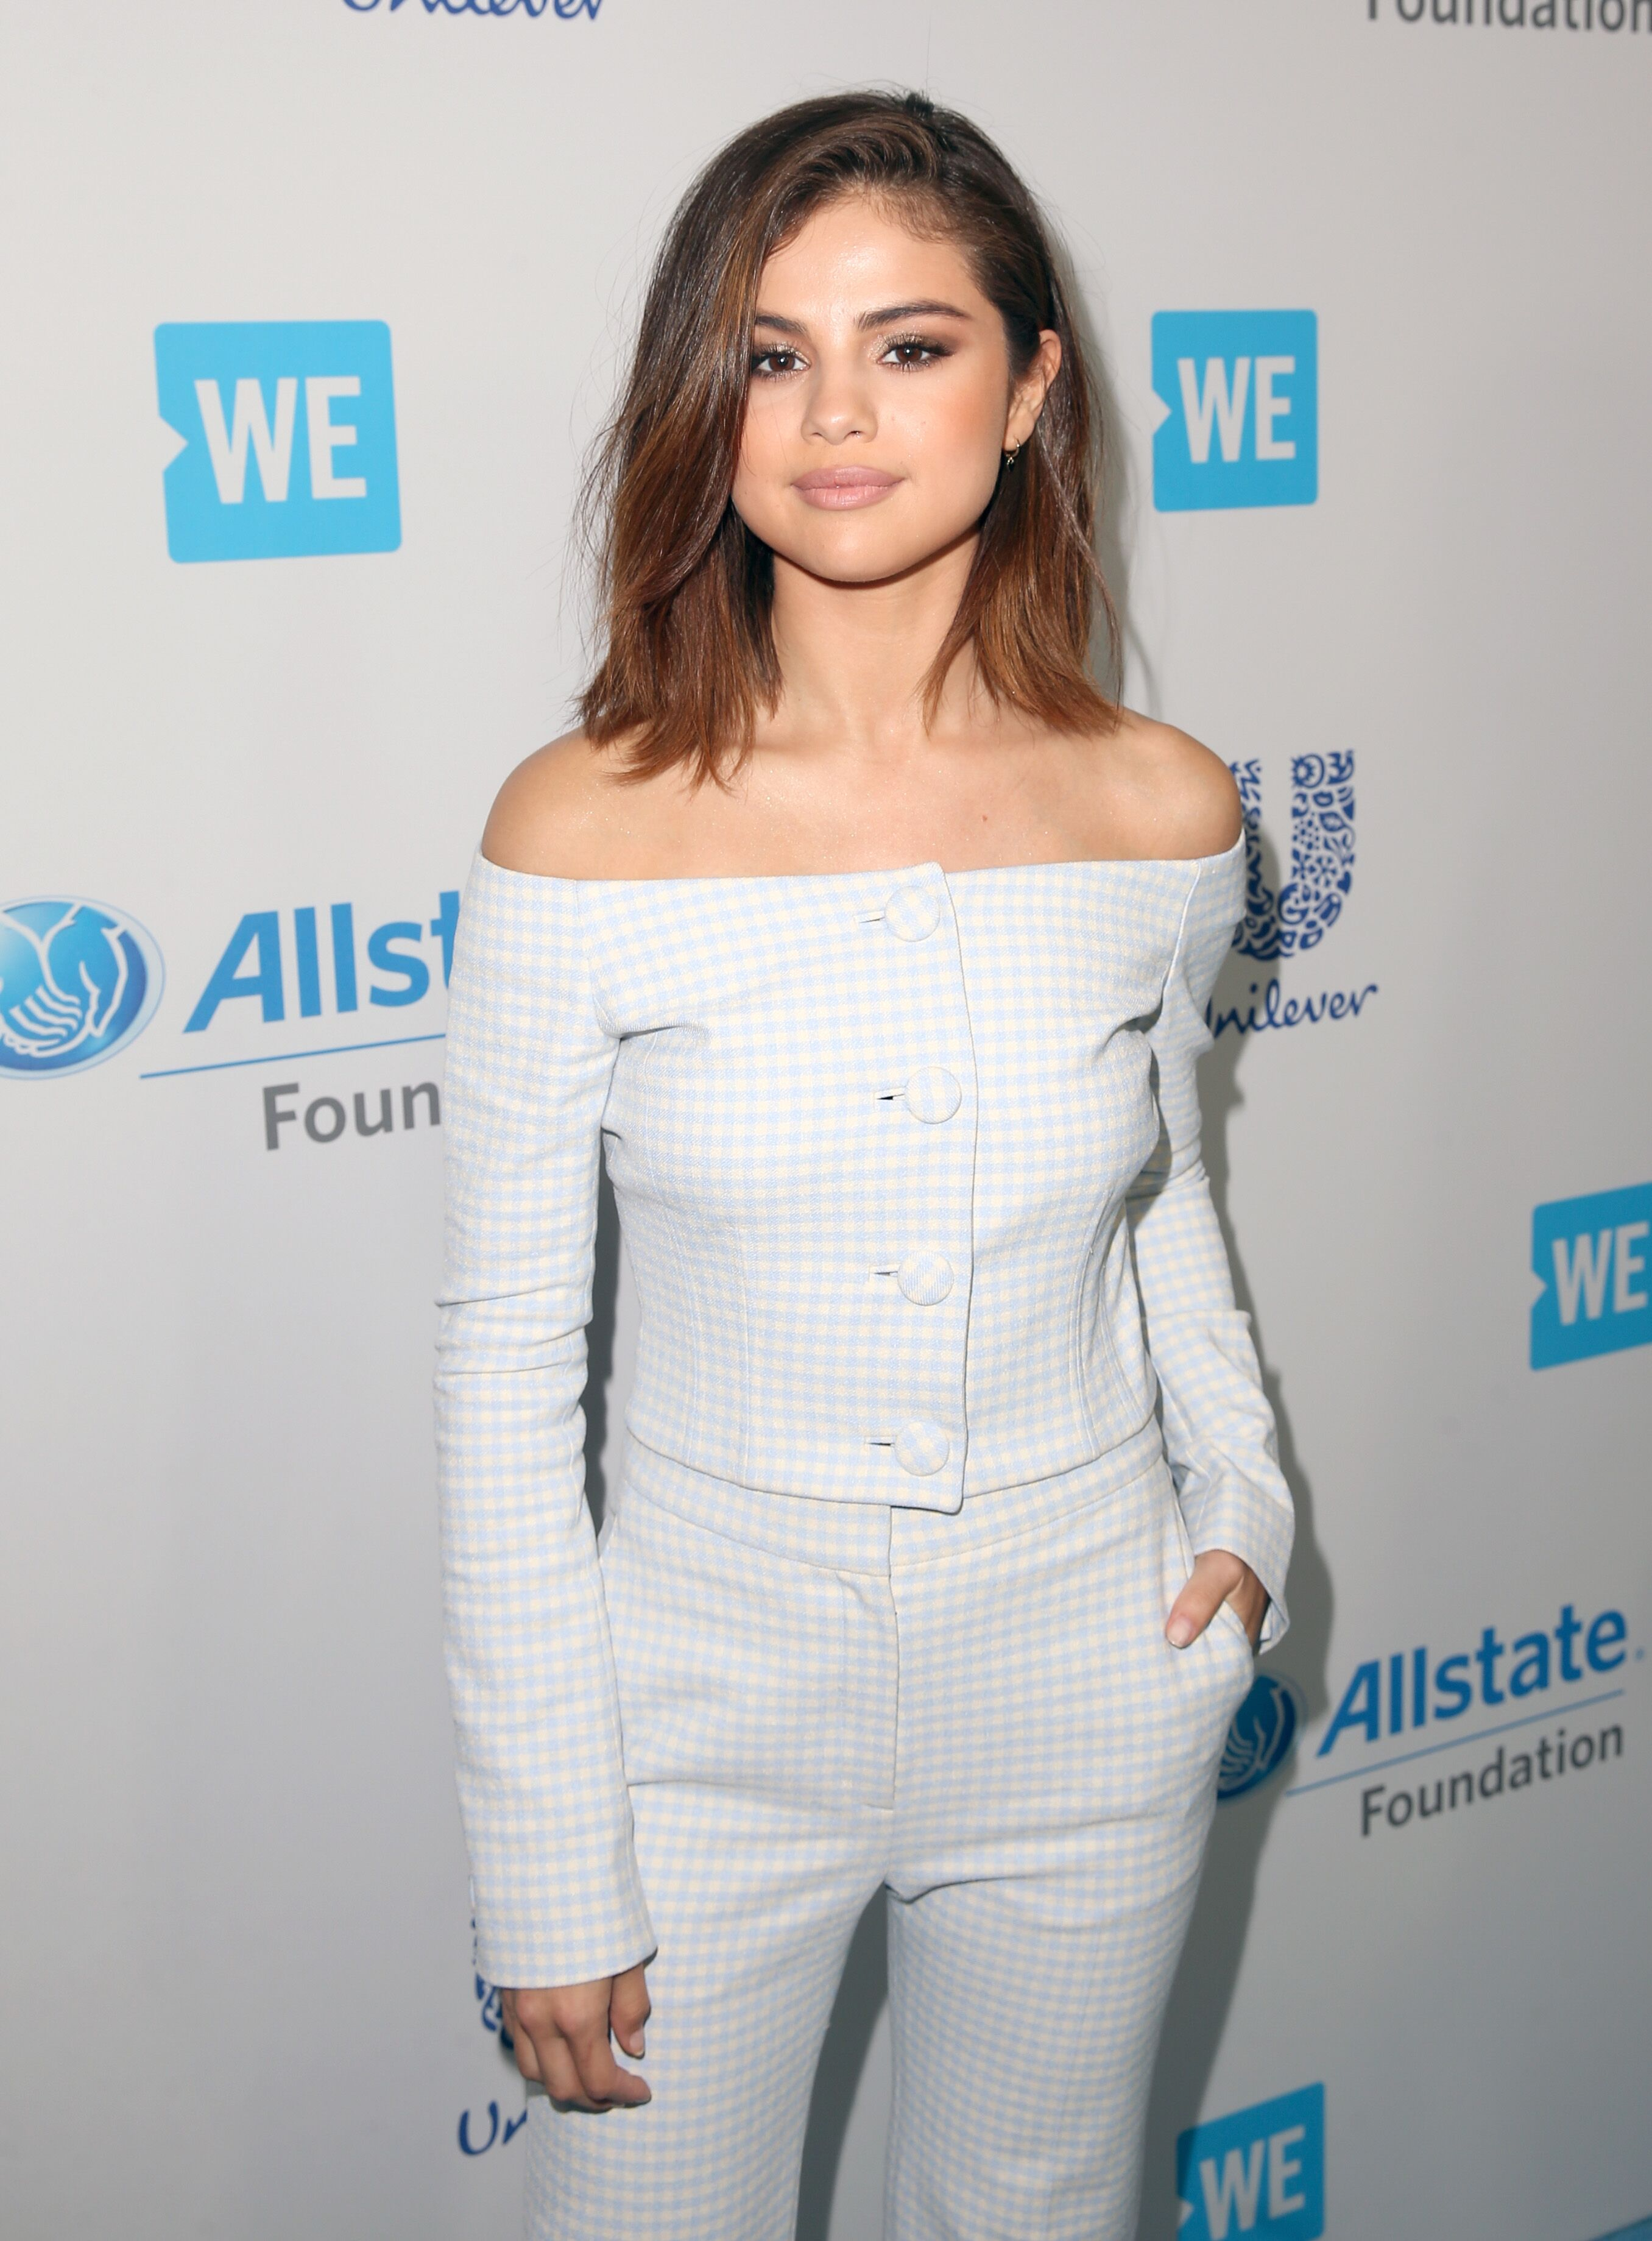 La chanteuse Selena Gomez. l Source : Getty Images